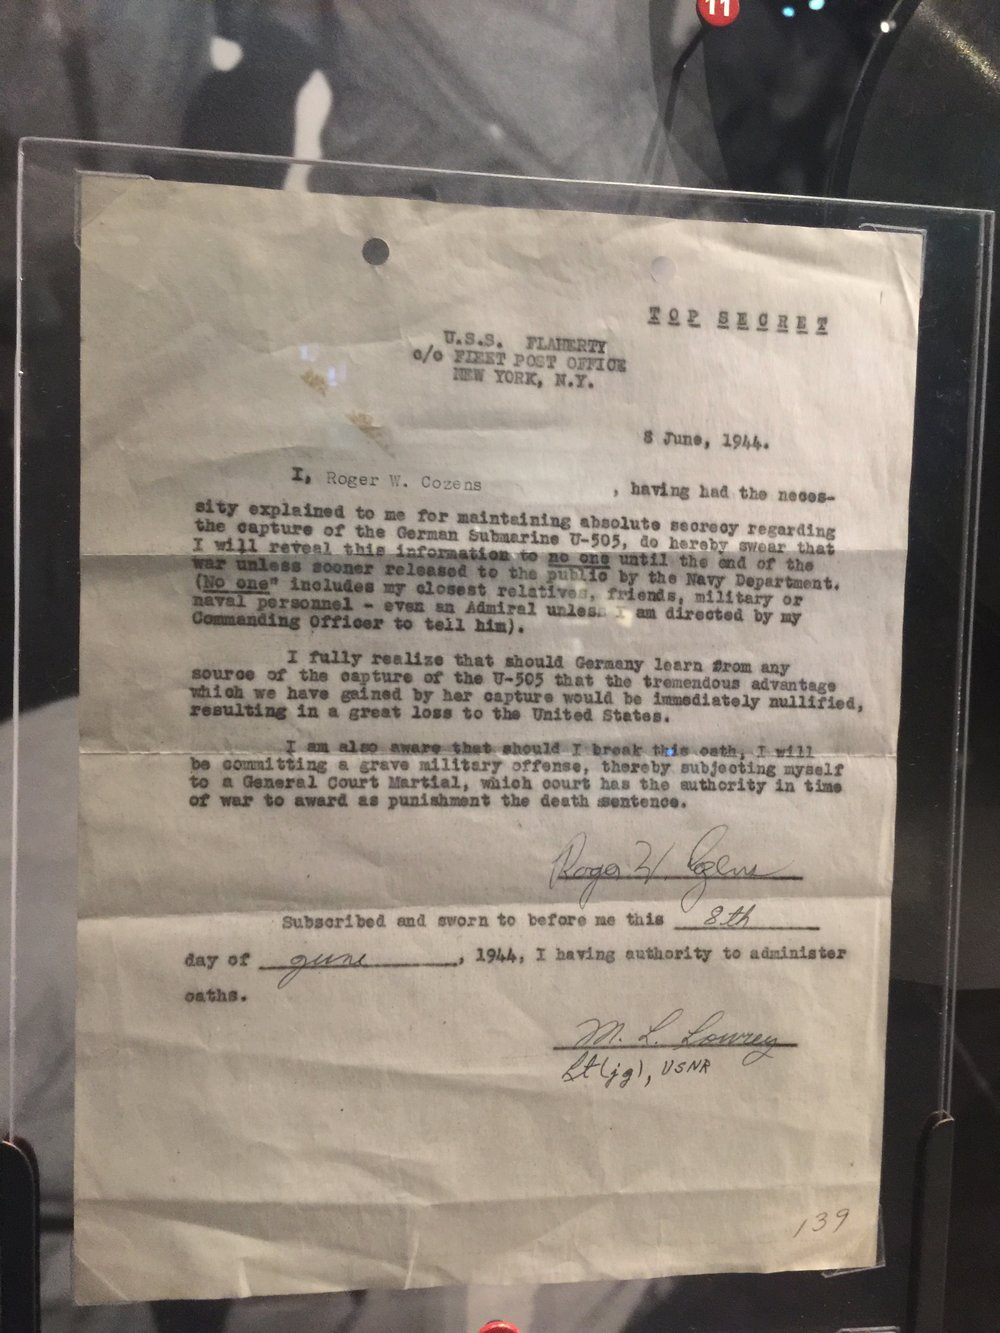 Original letter signed by crew member swearing to secrecy, the breach of which was punishable by death